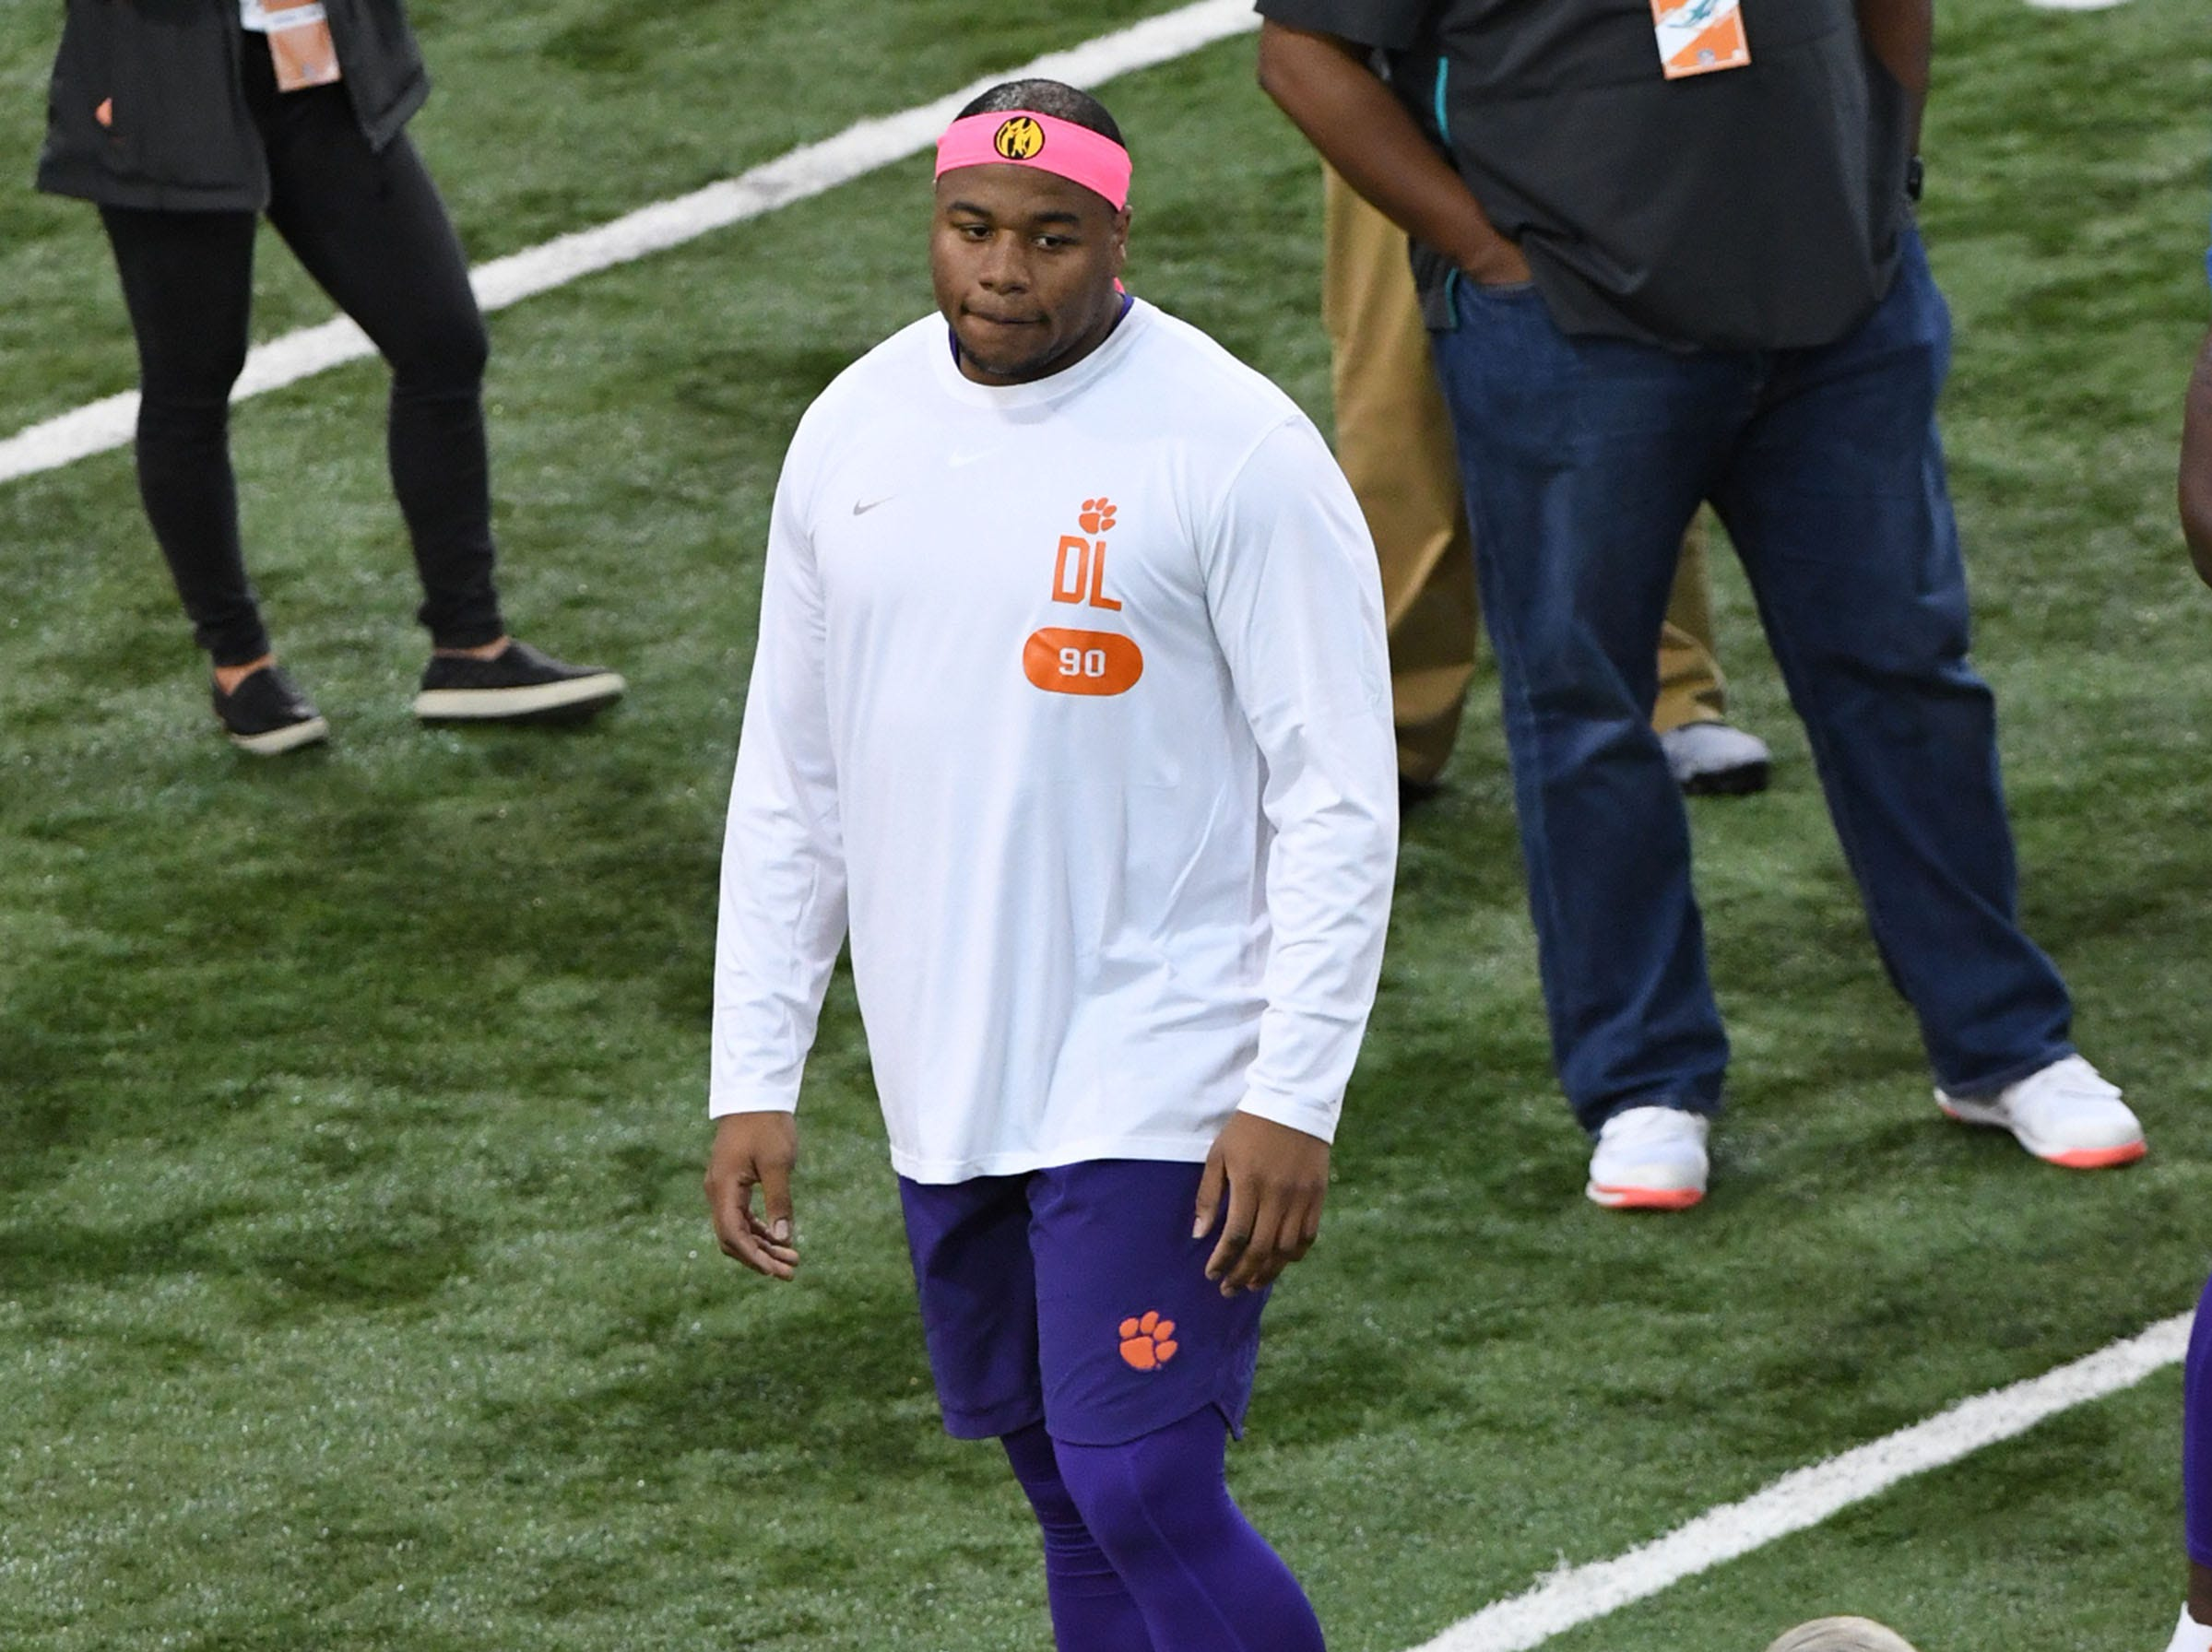 Defensive lineman Dexter Lawrence during Clemson Pro Day at the Poe Indoor Facility in Clemson, S.C. Thursday, March 14, 2019.